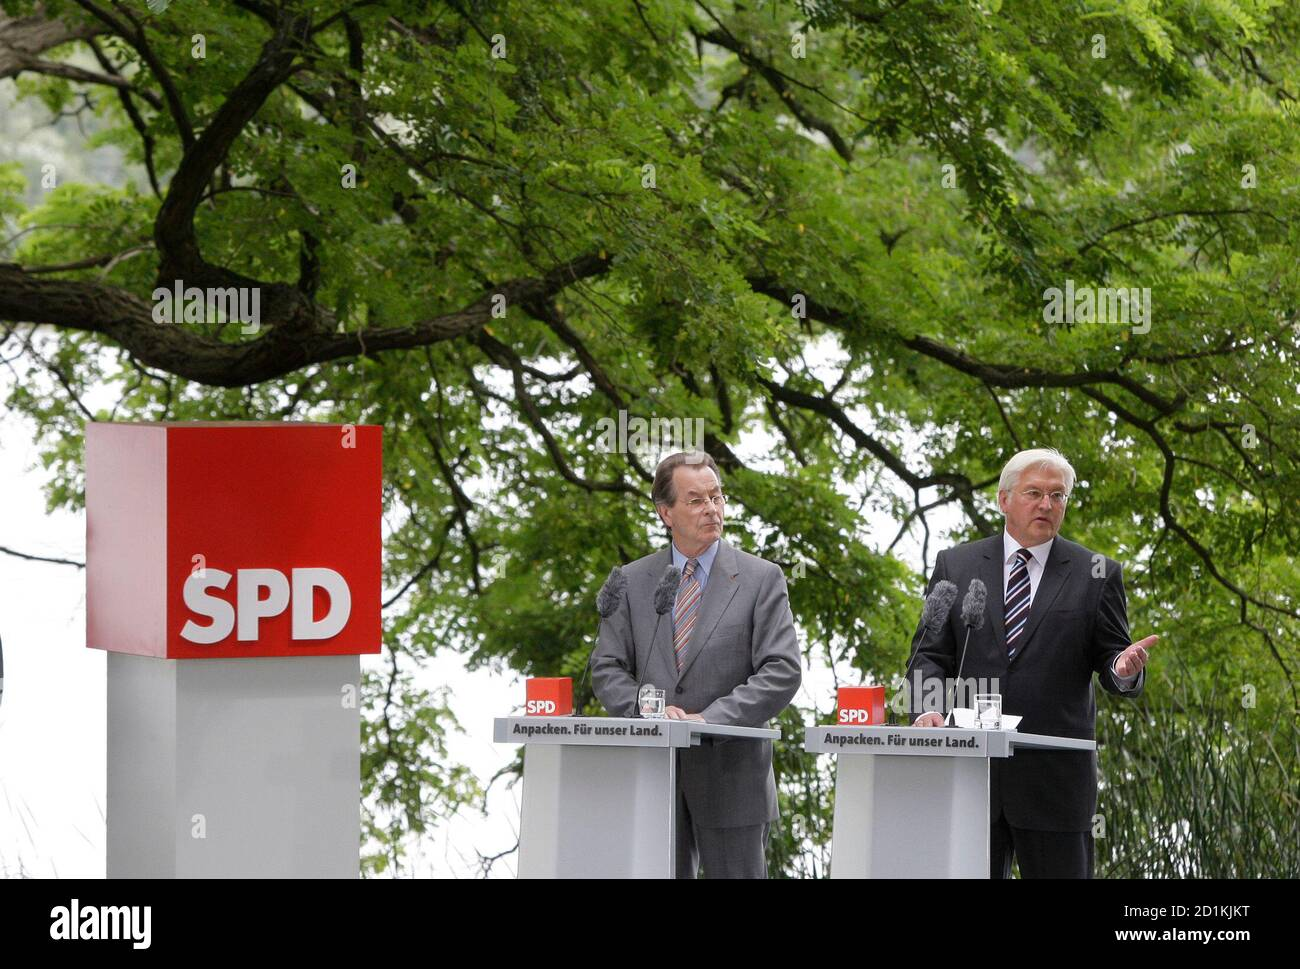 Frank-Walter Steinmeier (R), Germany's Social Democratic candidate for chancellor and SPD leader Franz Muentefering address the media in Potsdam, July 30, 2009.     REUTERS/Tobias Schwarz     (GERMANY POLITICS ELECTIONS) Stock Photo